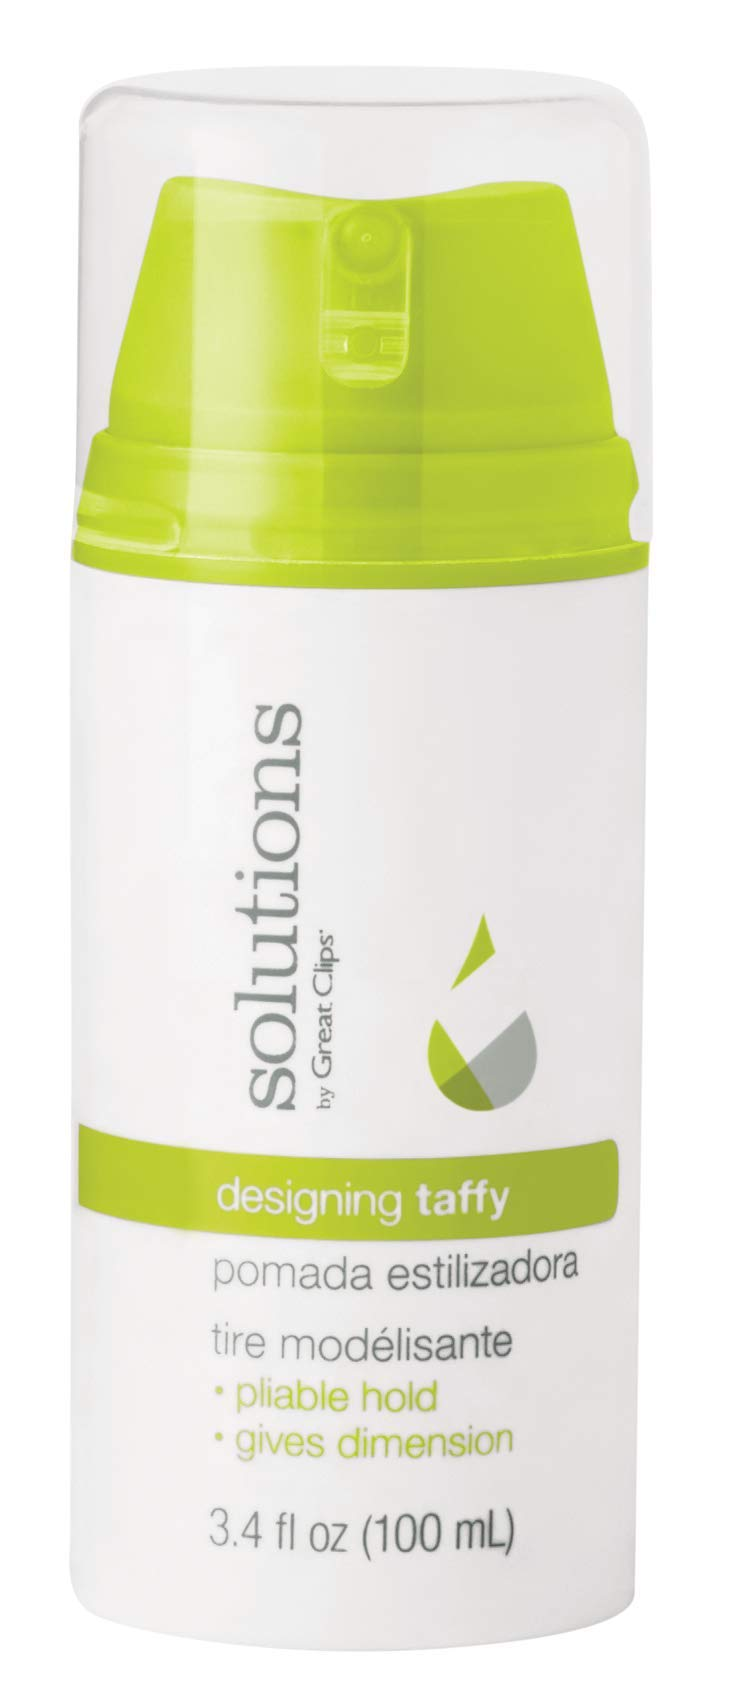 Solutions by Great Clips Designing Taffy 3.4oz   Styling Cream   Pliable Hold with High Shine   Works in Dry or Wet Hair by GREAT CLIPS